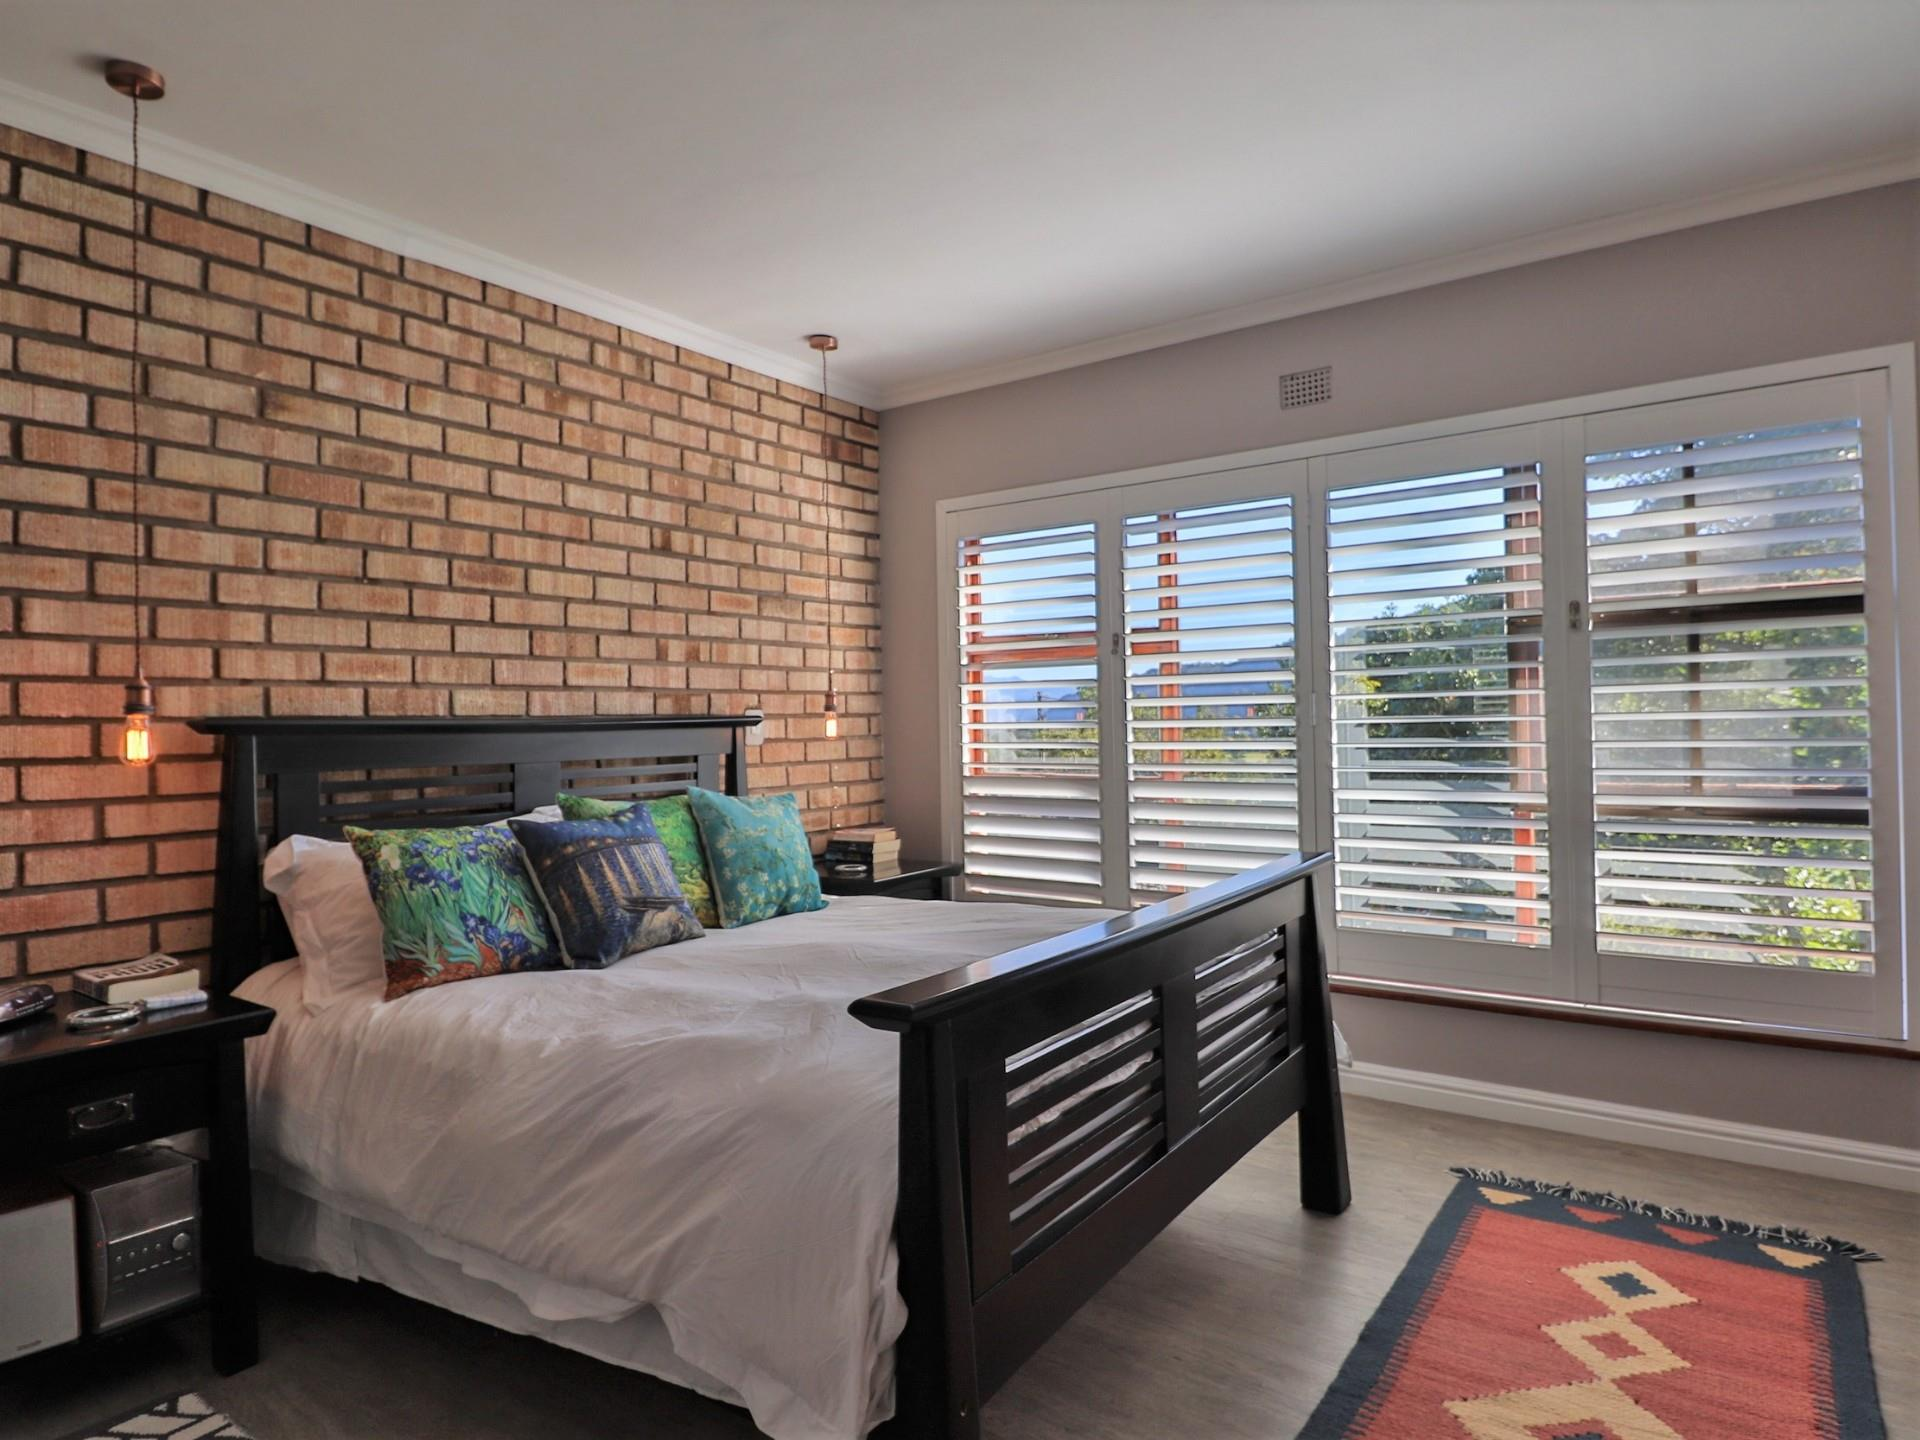 4 Bedroom House For Sale in The Village